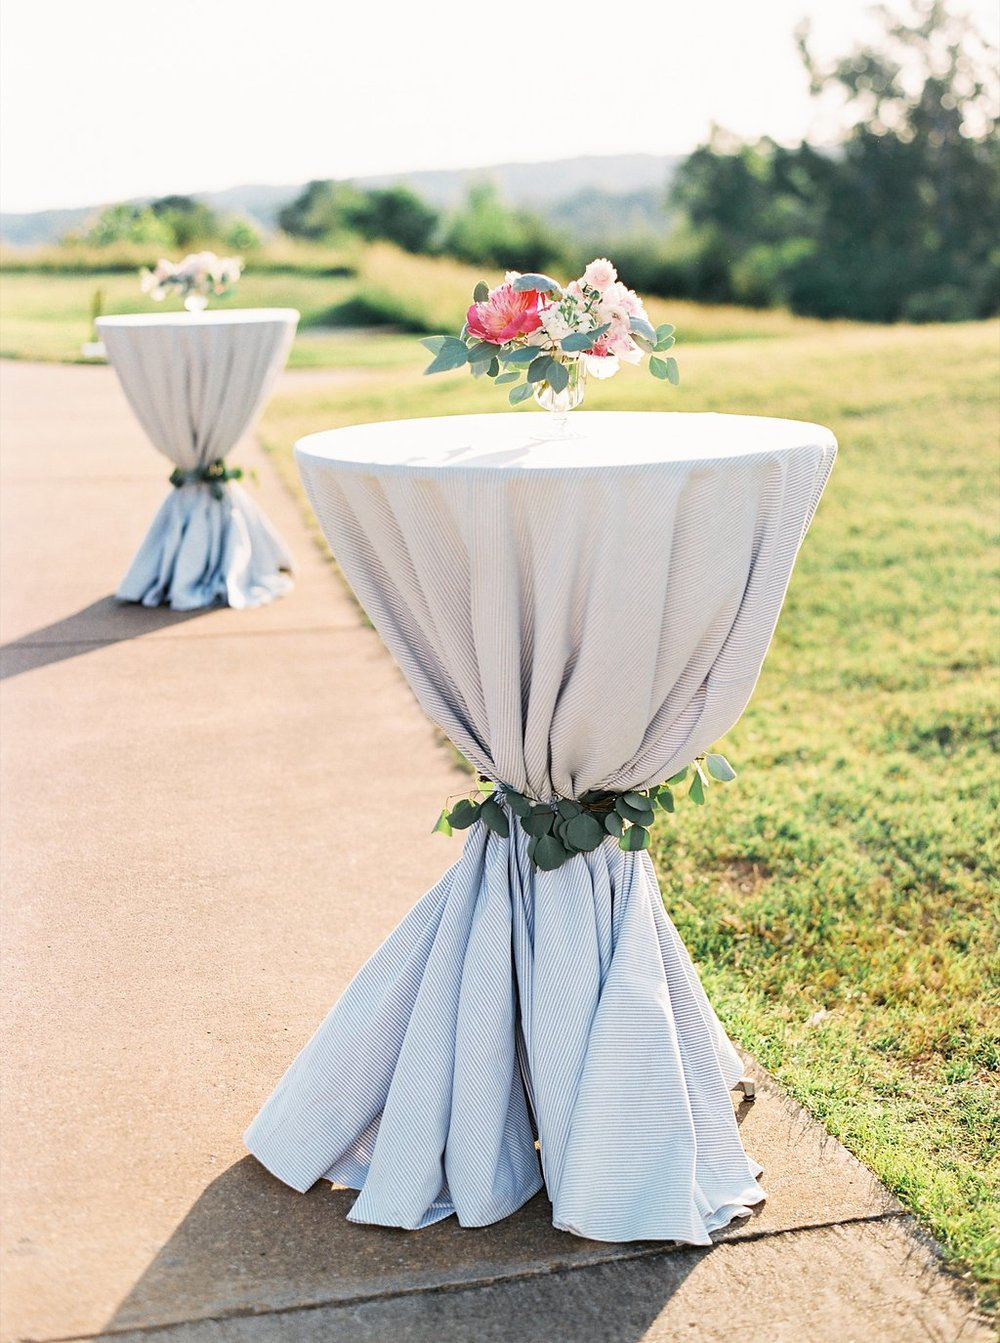 Cocktail Hour French Blue Striped Cocktail Tables tied with Eucalyptus Leaves | Blush and Navy Wedding with Fuchsia, French Blue and Gold Accents | Simply Jessica Marie's Southern Wedding at Gettysvue Golf Course and Country Club in Knoxville Tennessee | Photo by Perry Vaile Photography